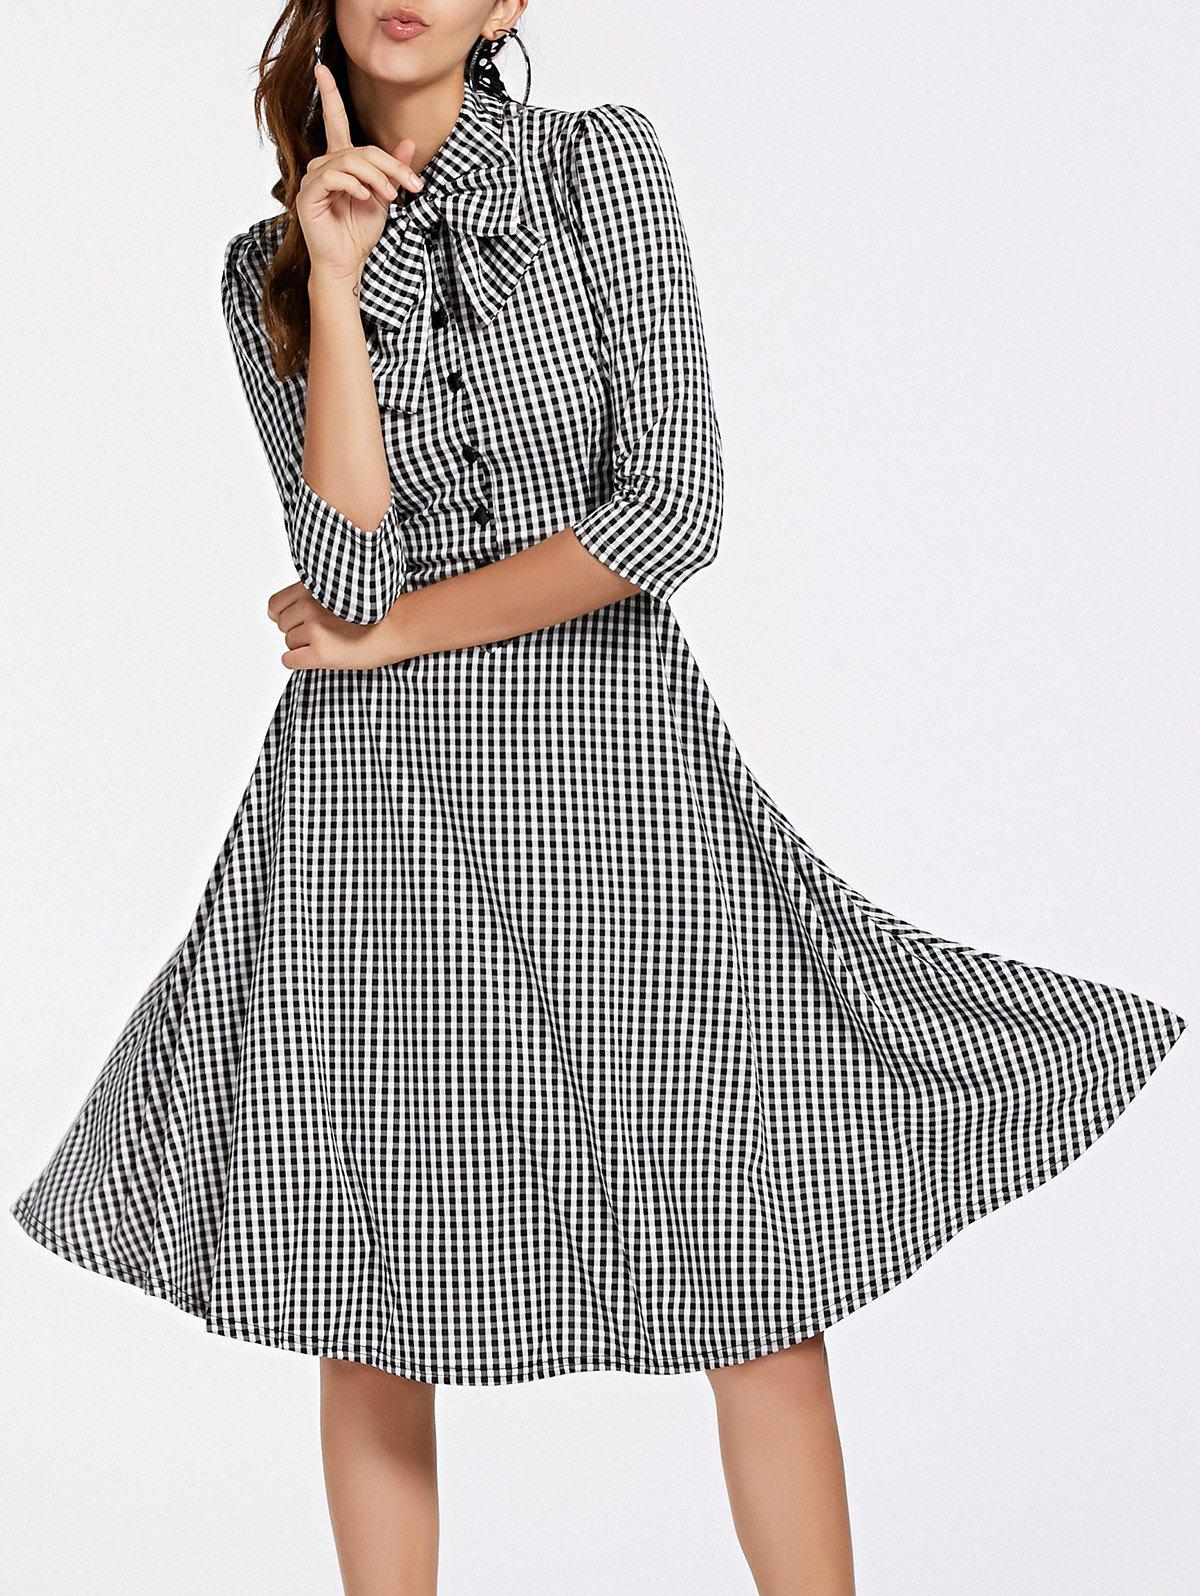 Stylish Women's 3/4 Sleeve Bow Tie Collar Buttoned Plaid Dress exaggerate bell sleeve buttoned keyhole dress